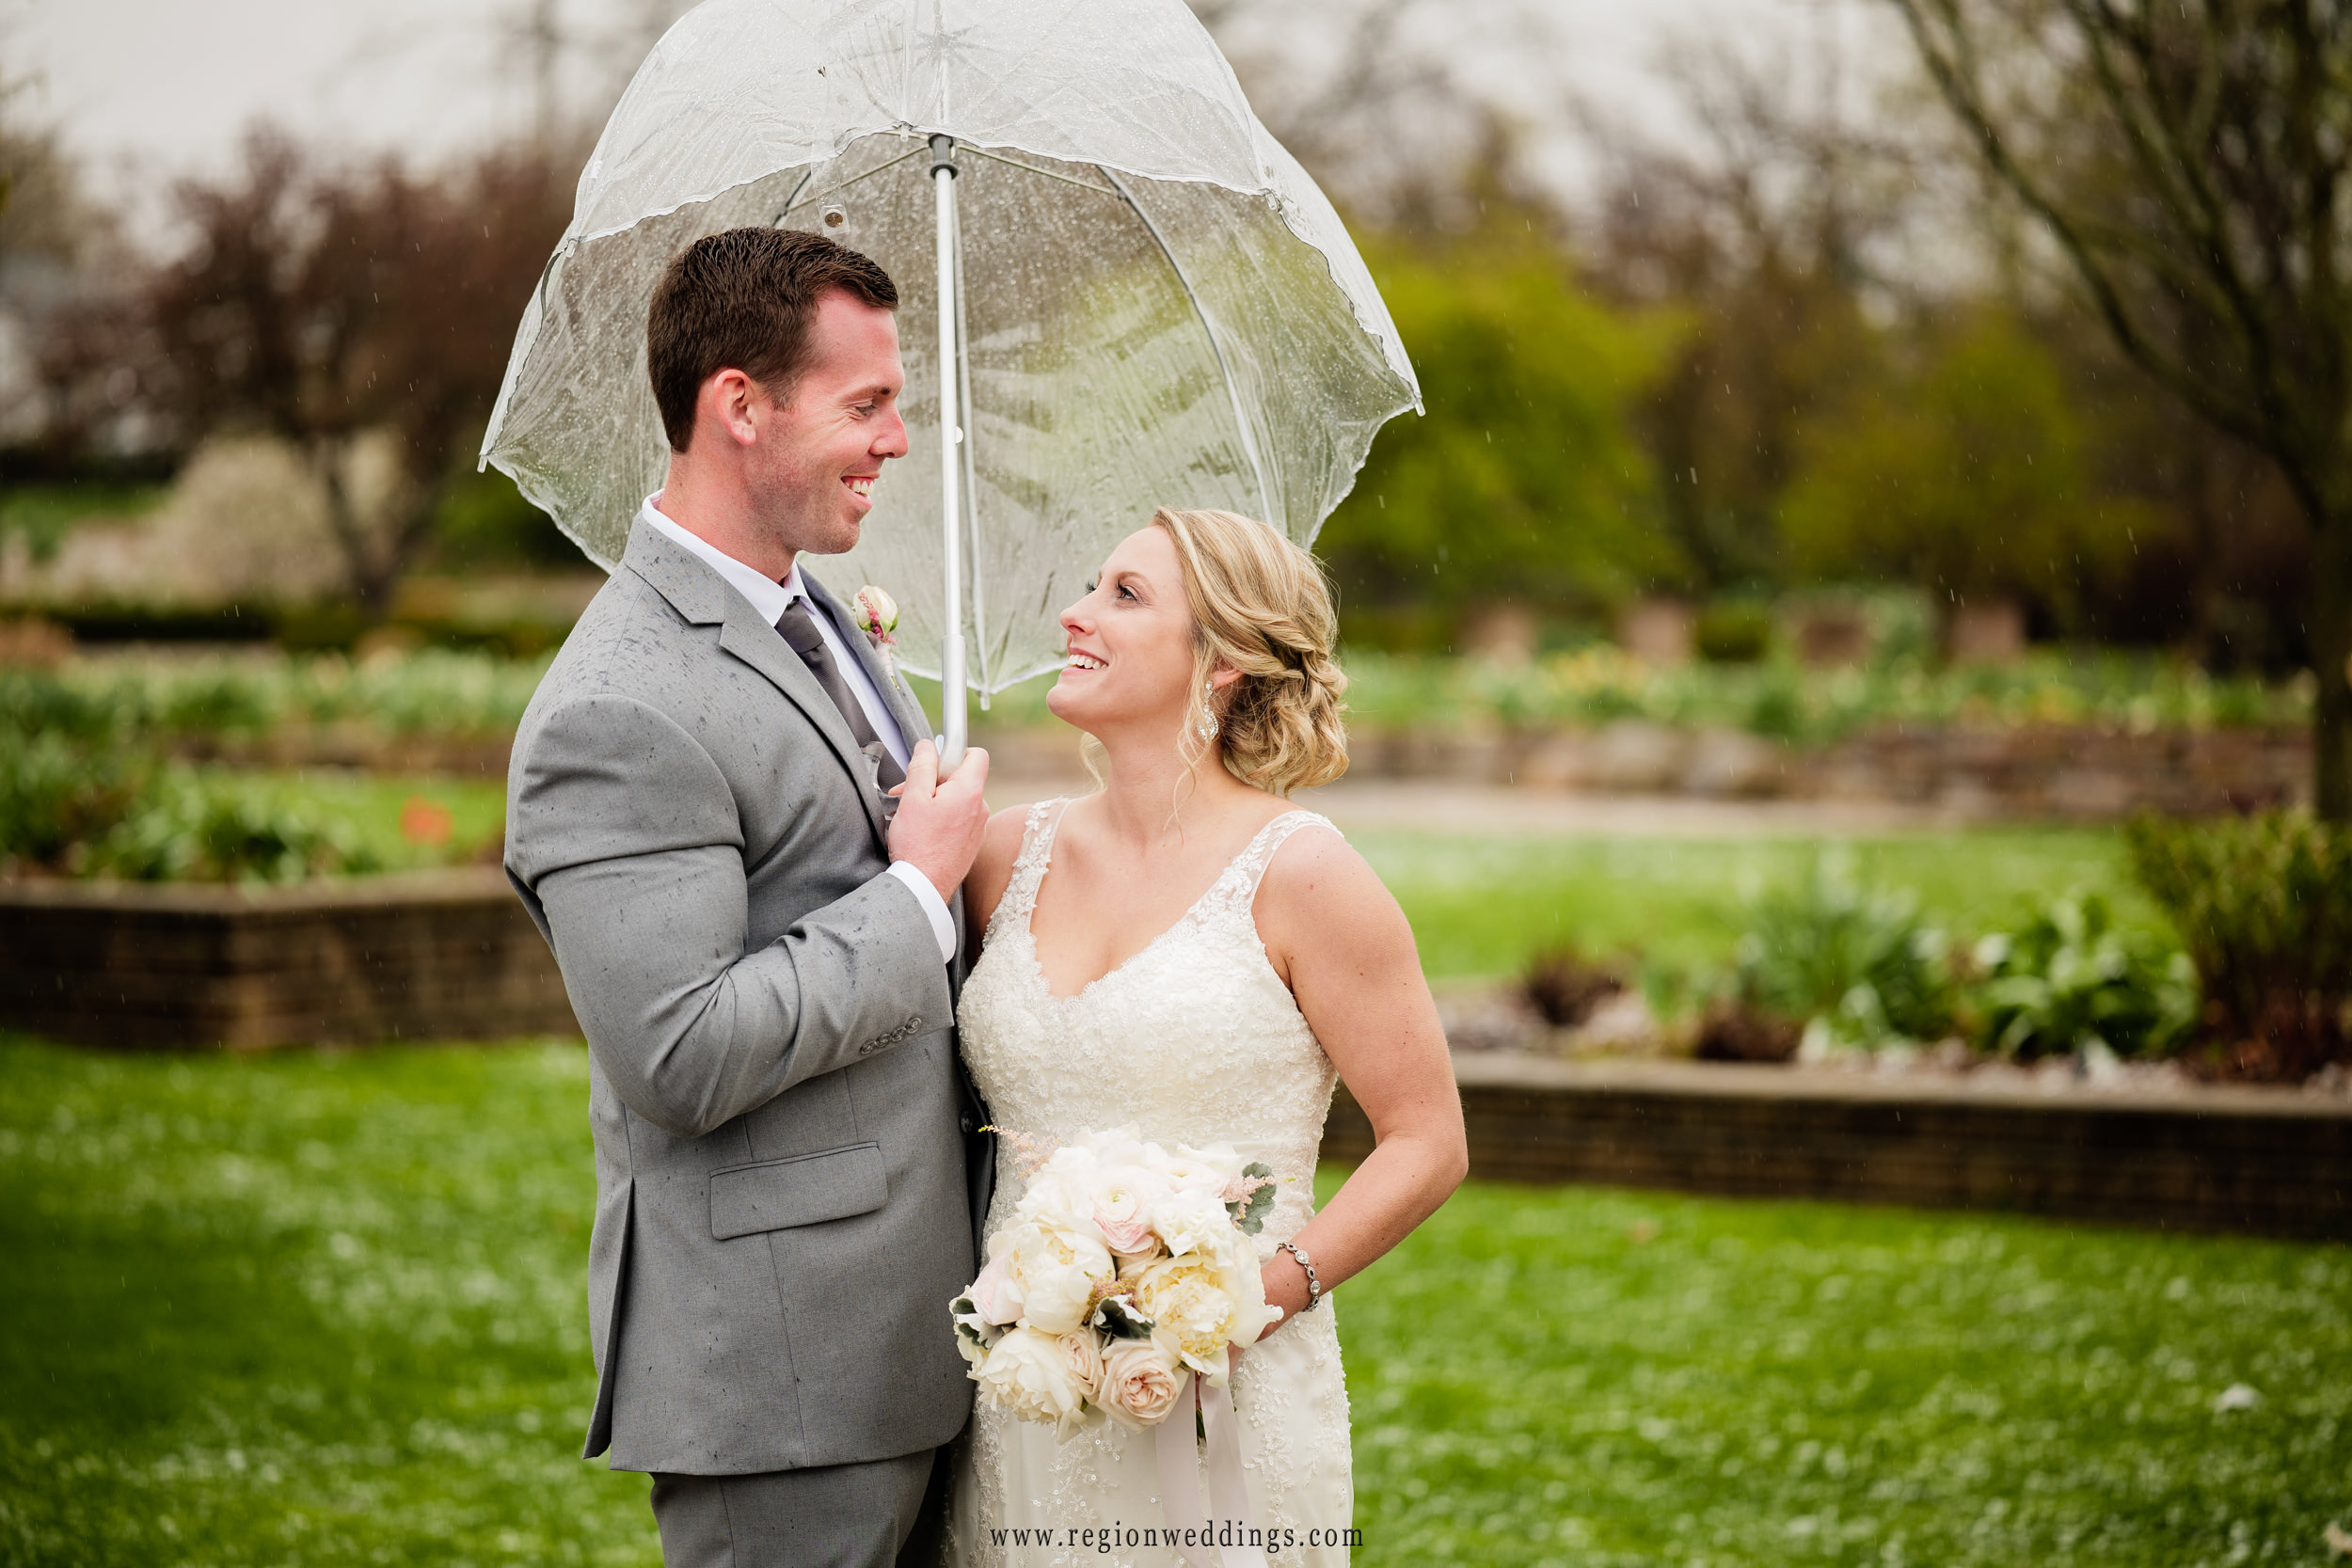 Bride and groom have a laugh in the rain at Ogden Garden.